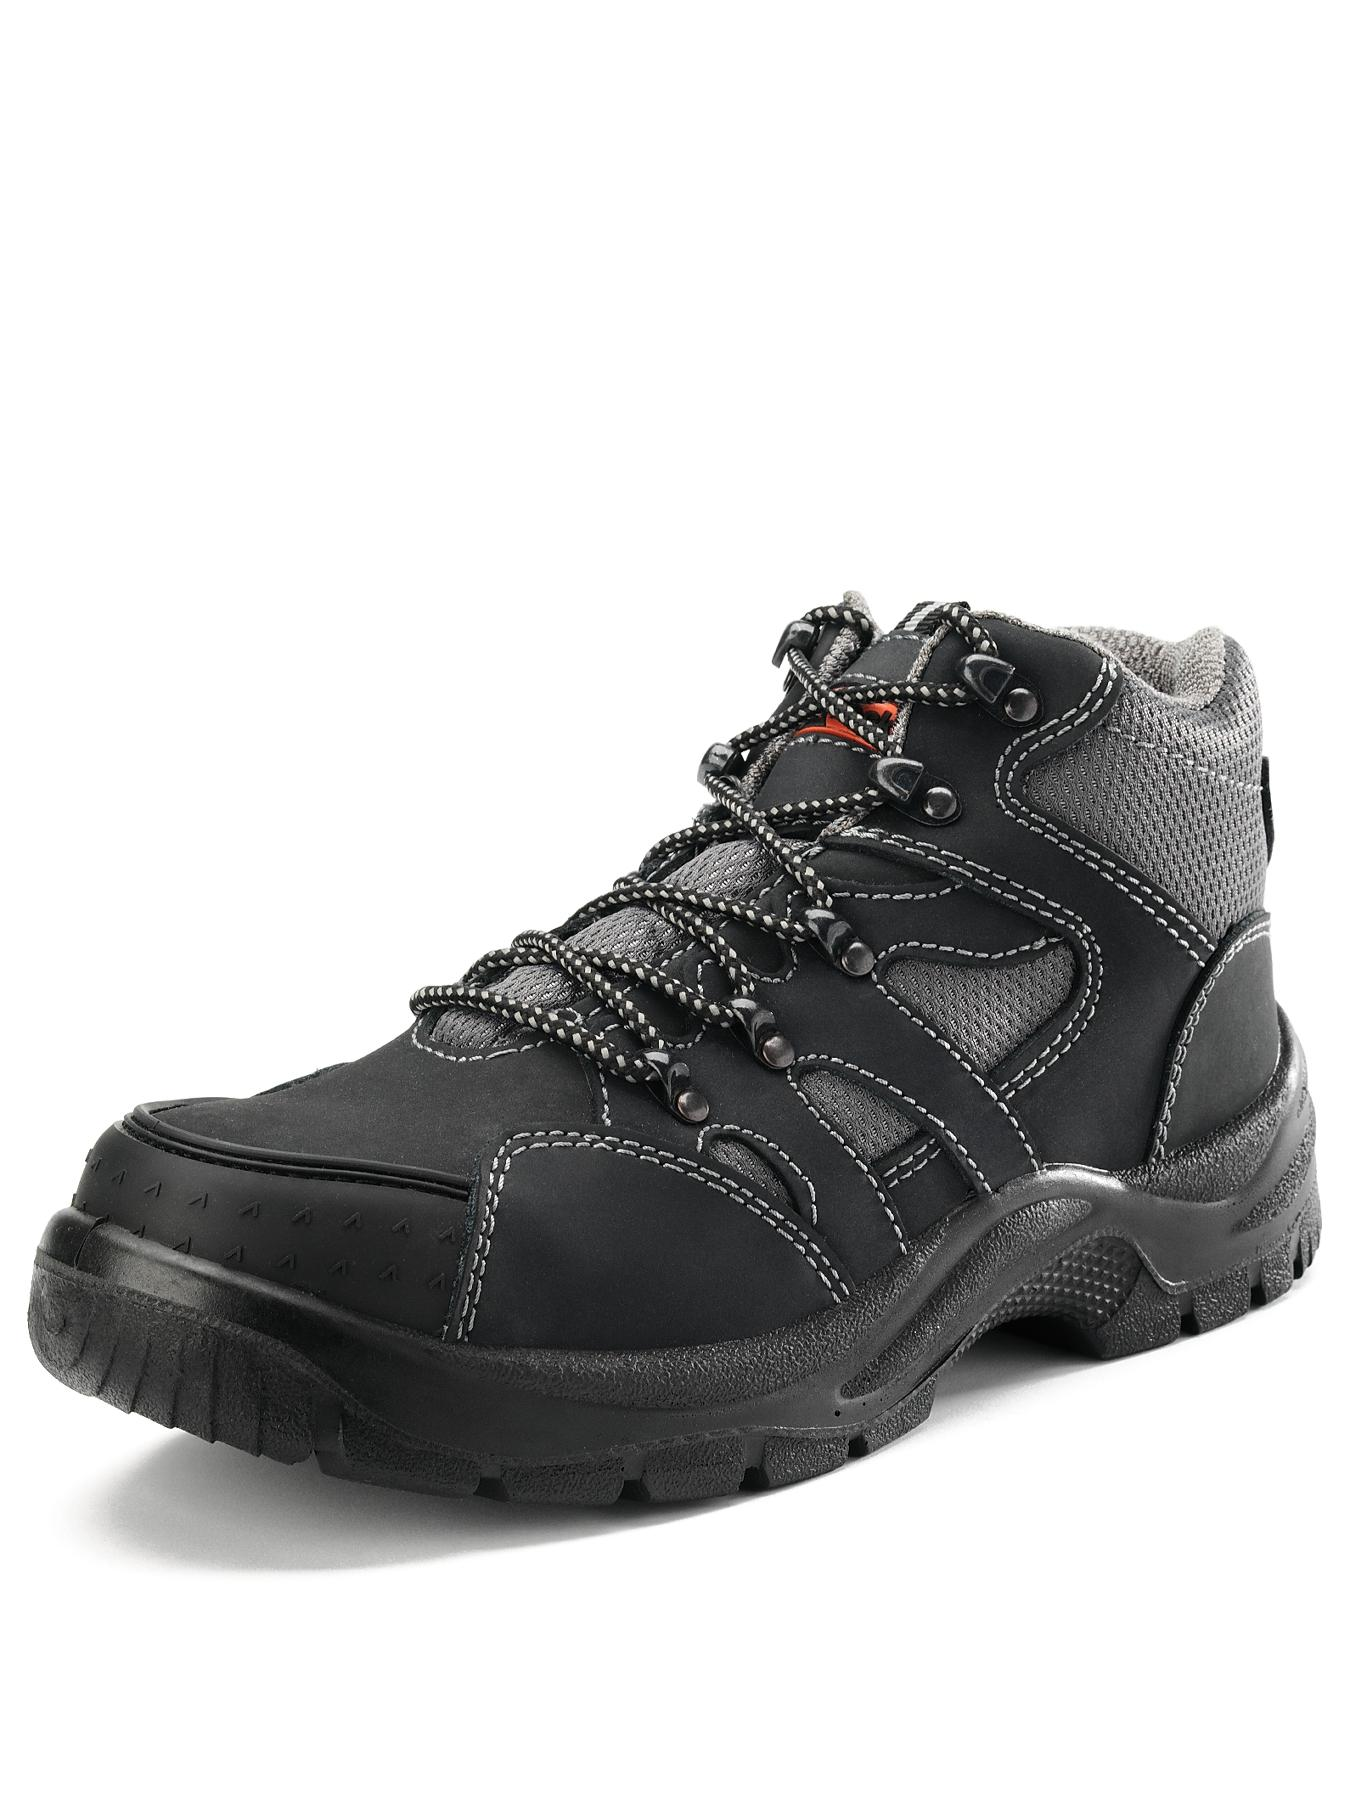 Stormforce Hiker Mens Safety Boots, Black